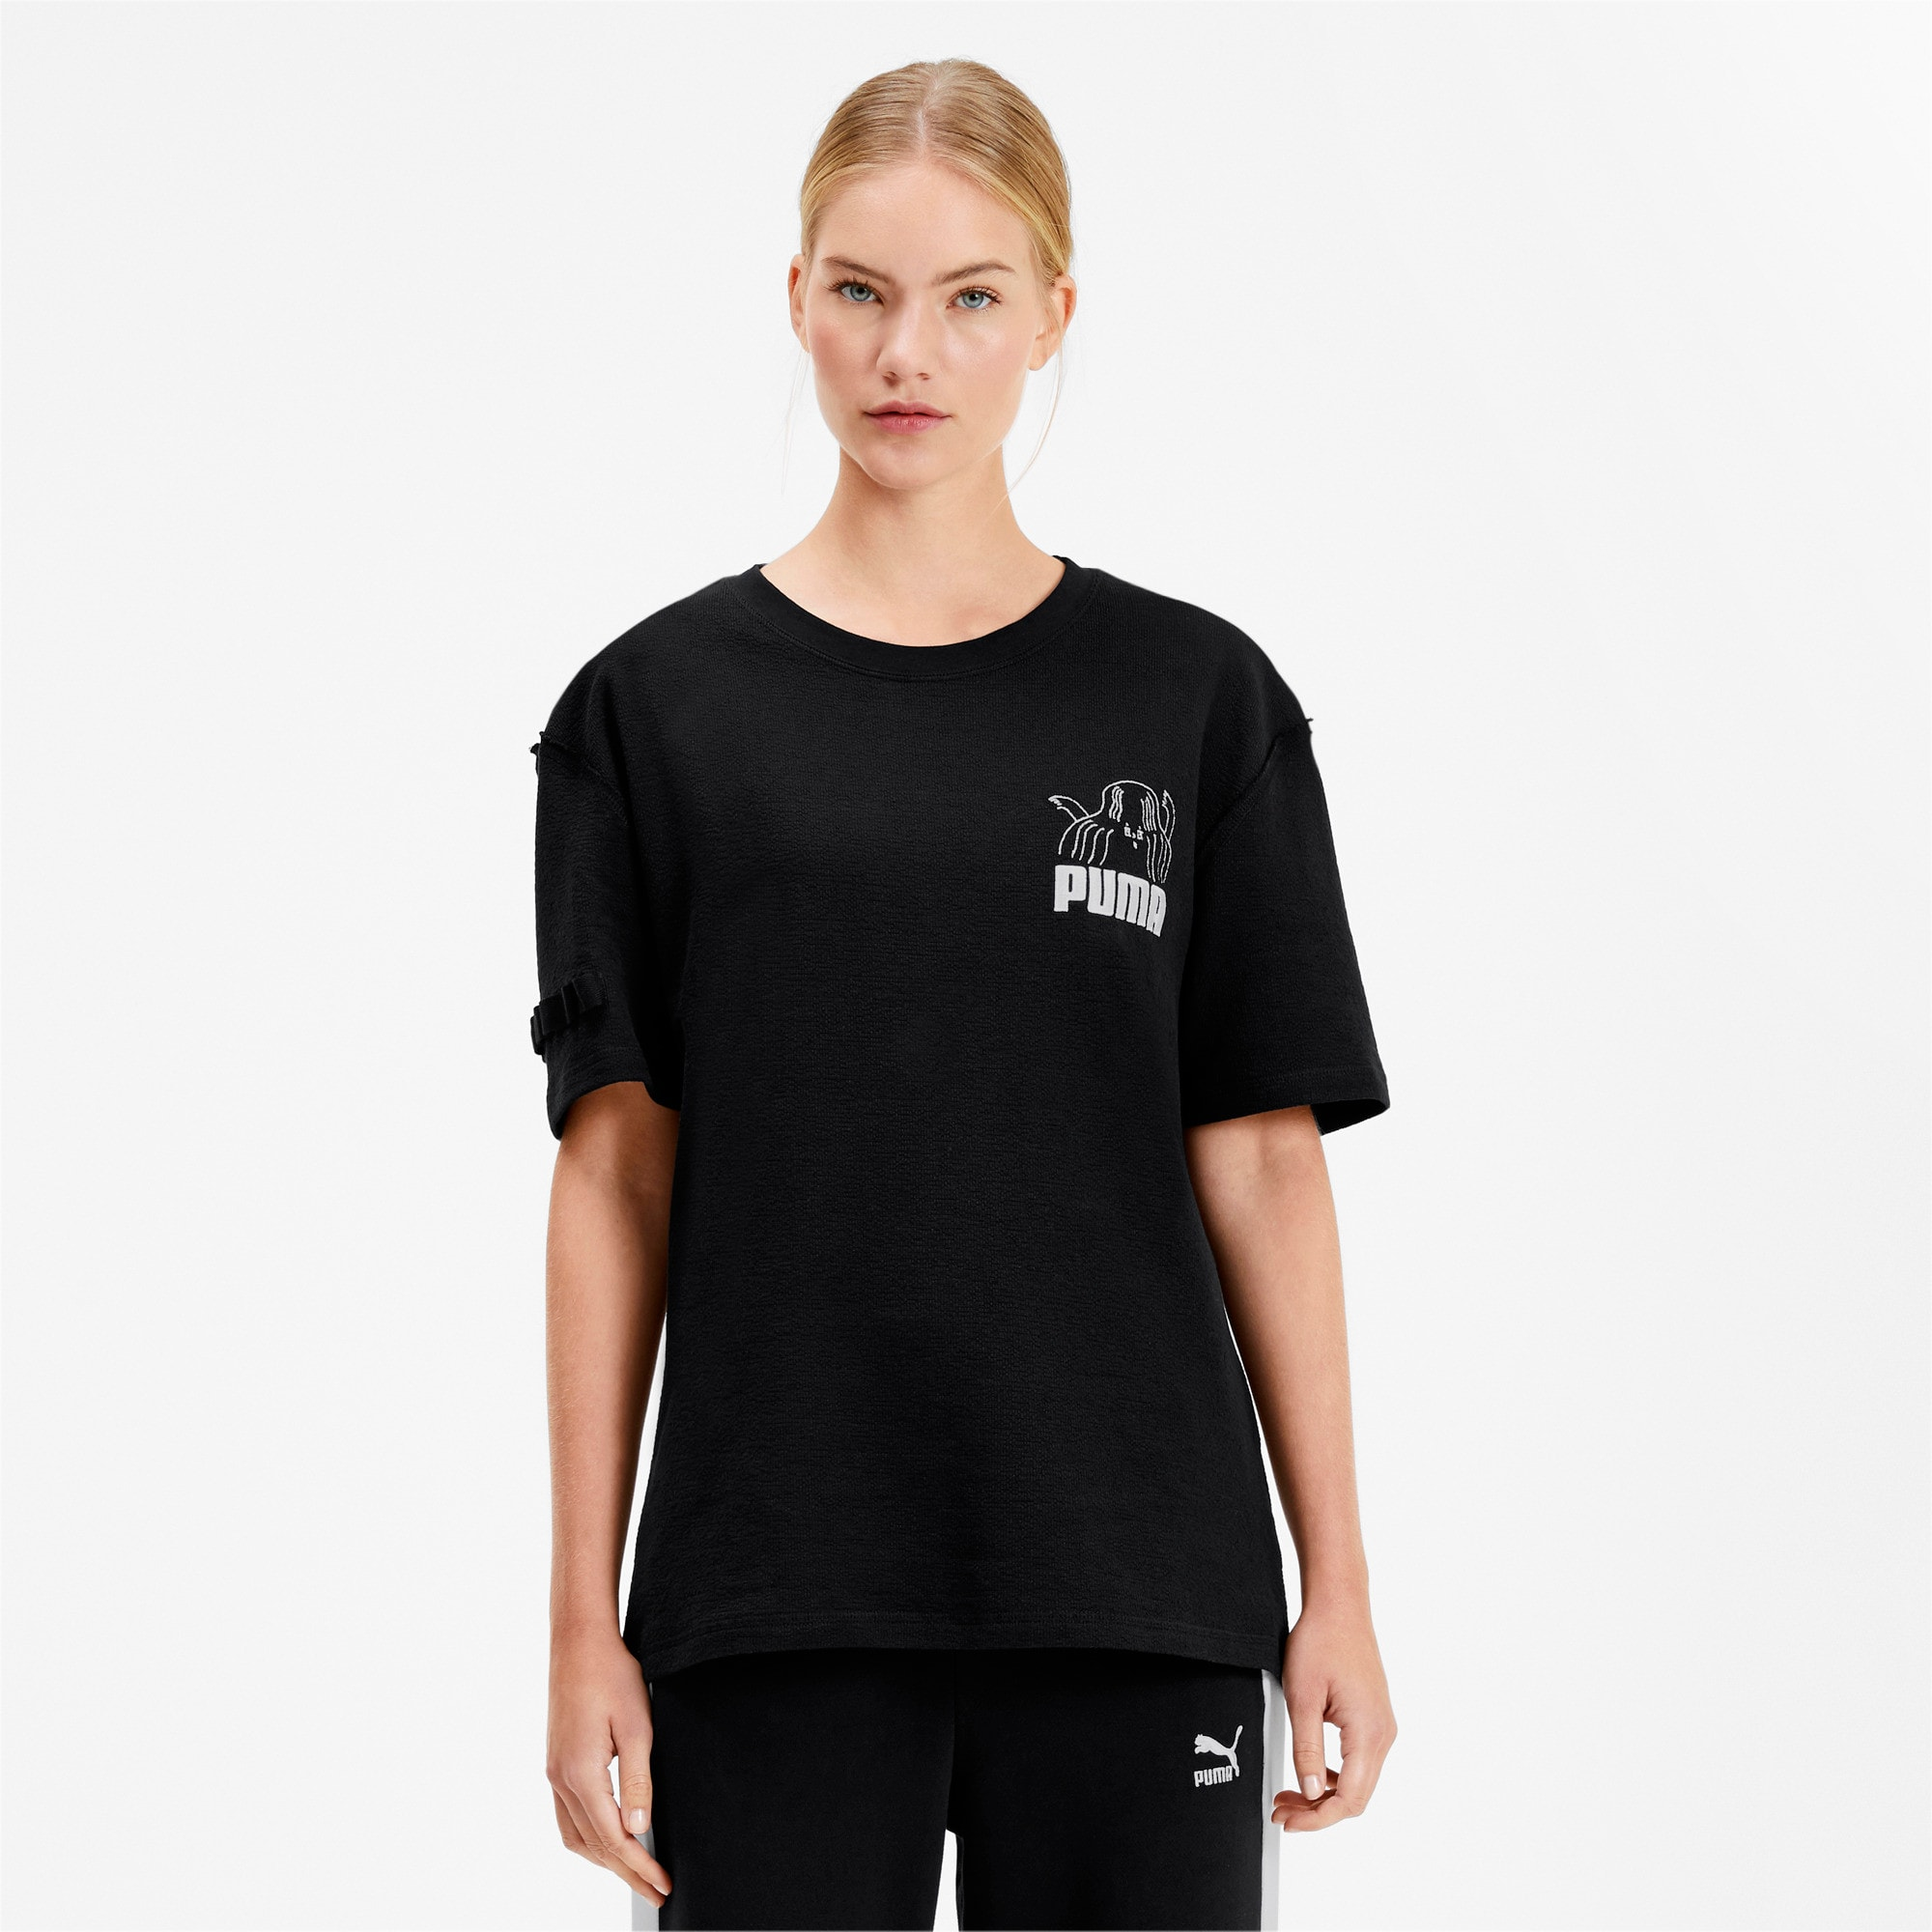 Thumbnail 2 of PUMA x TYAKASHA Tee, Cotton Black, medium